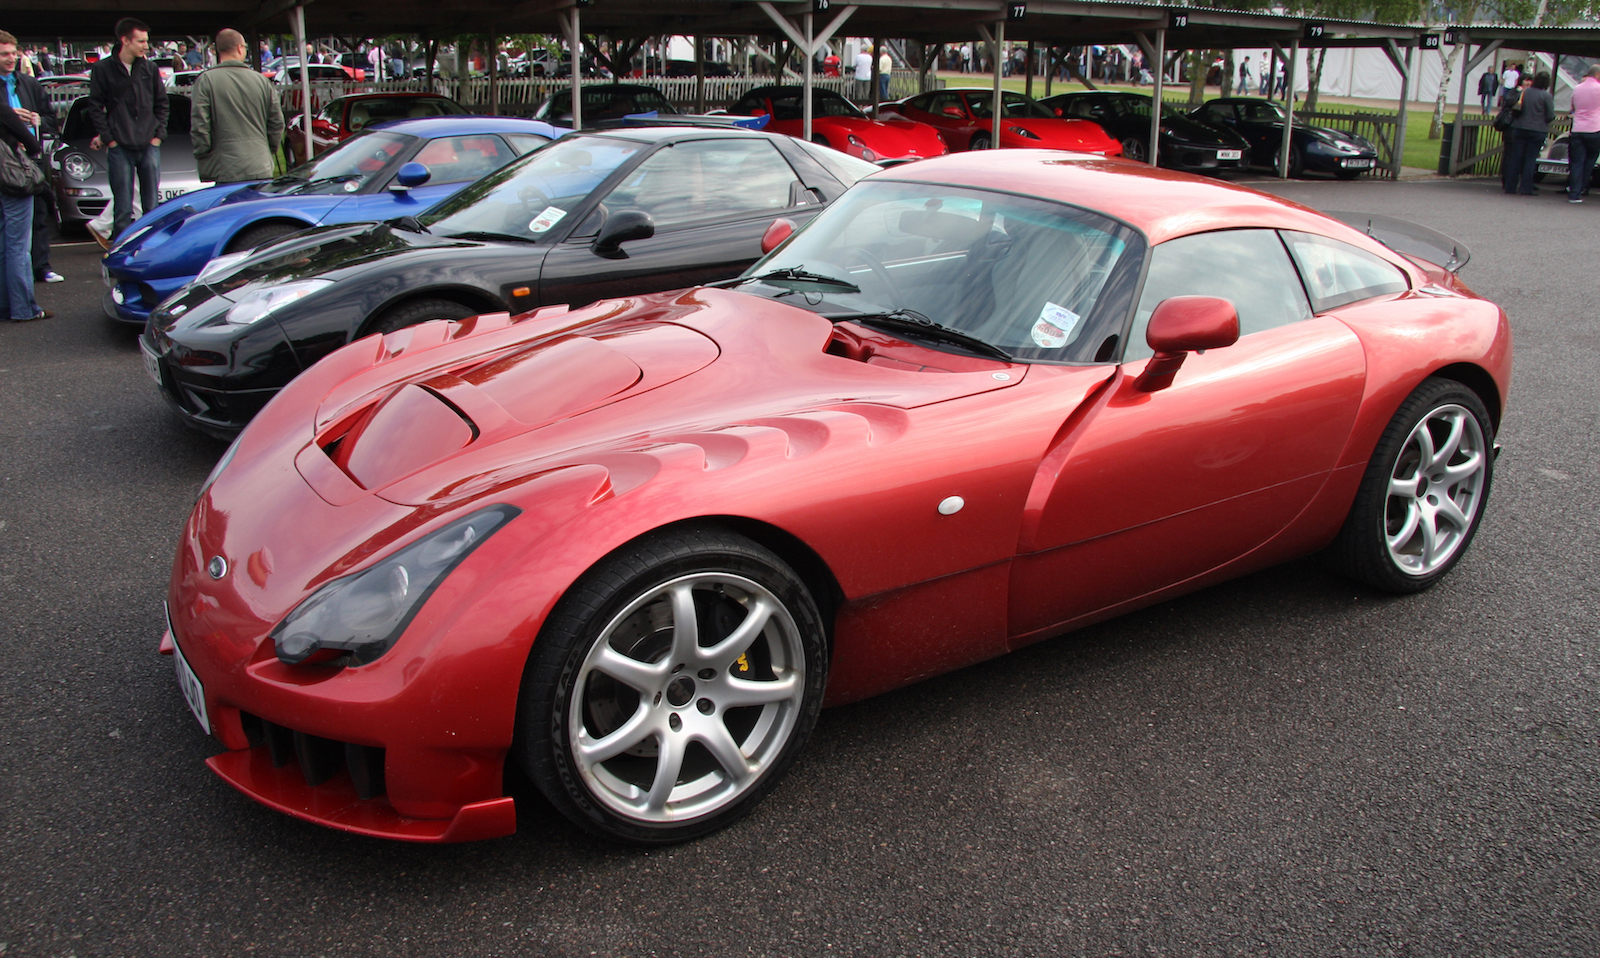 The TVR Sagaris Sports Car